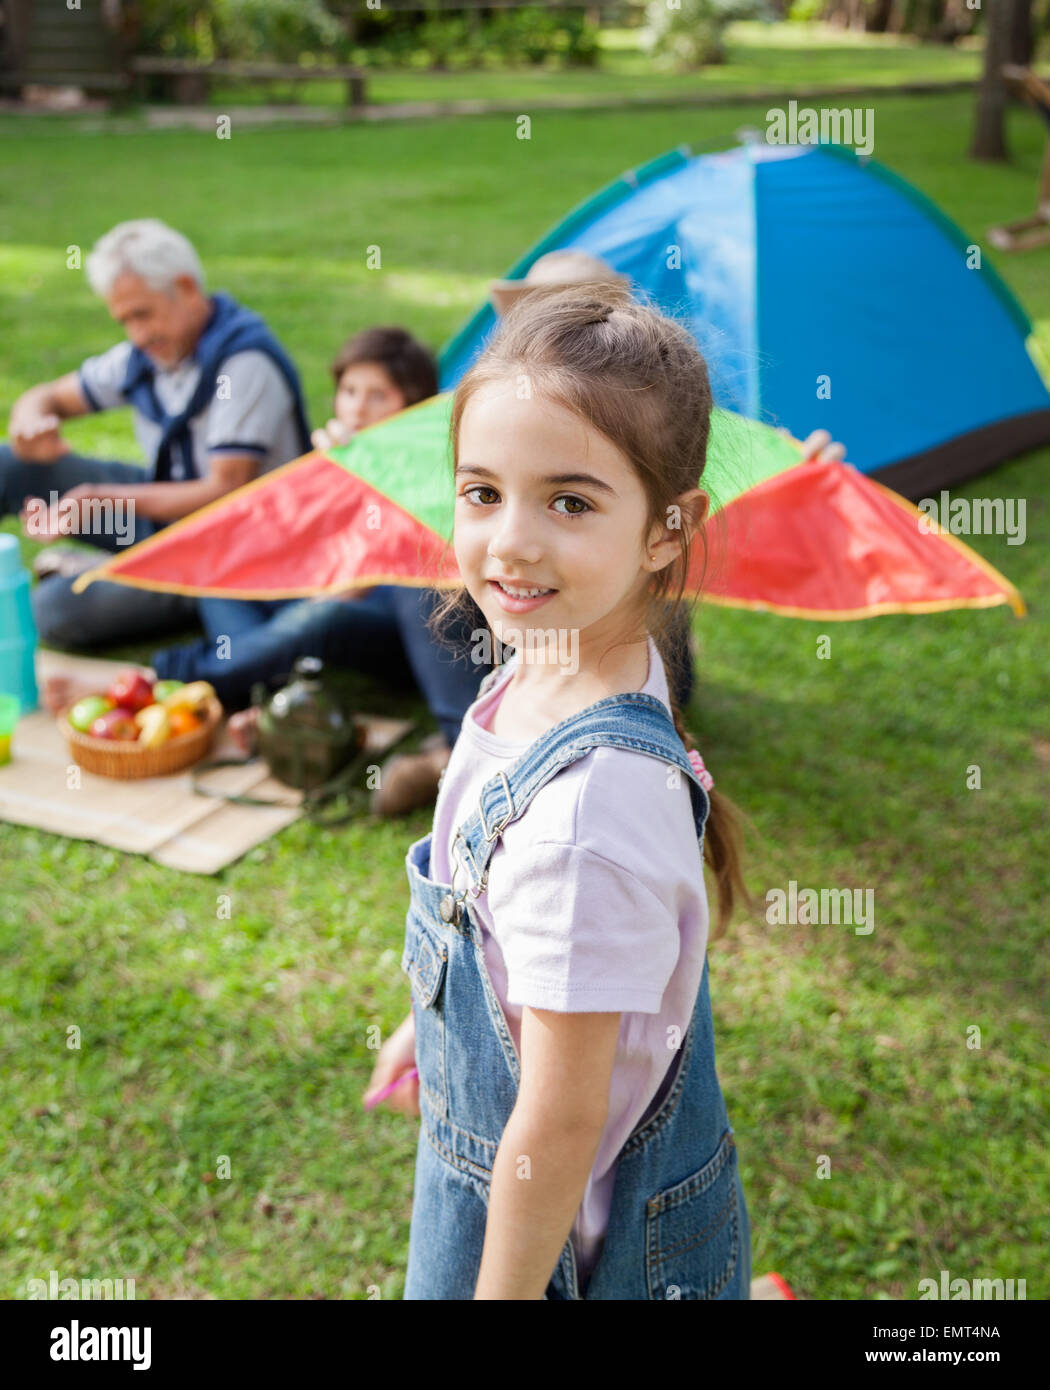 Smiling Girl Standing At Campsite - Stock Image